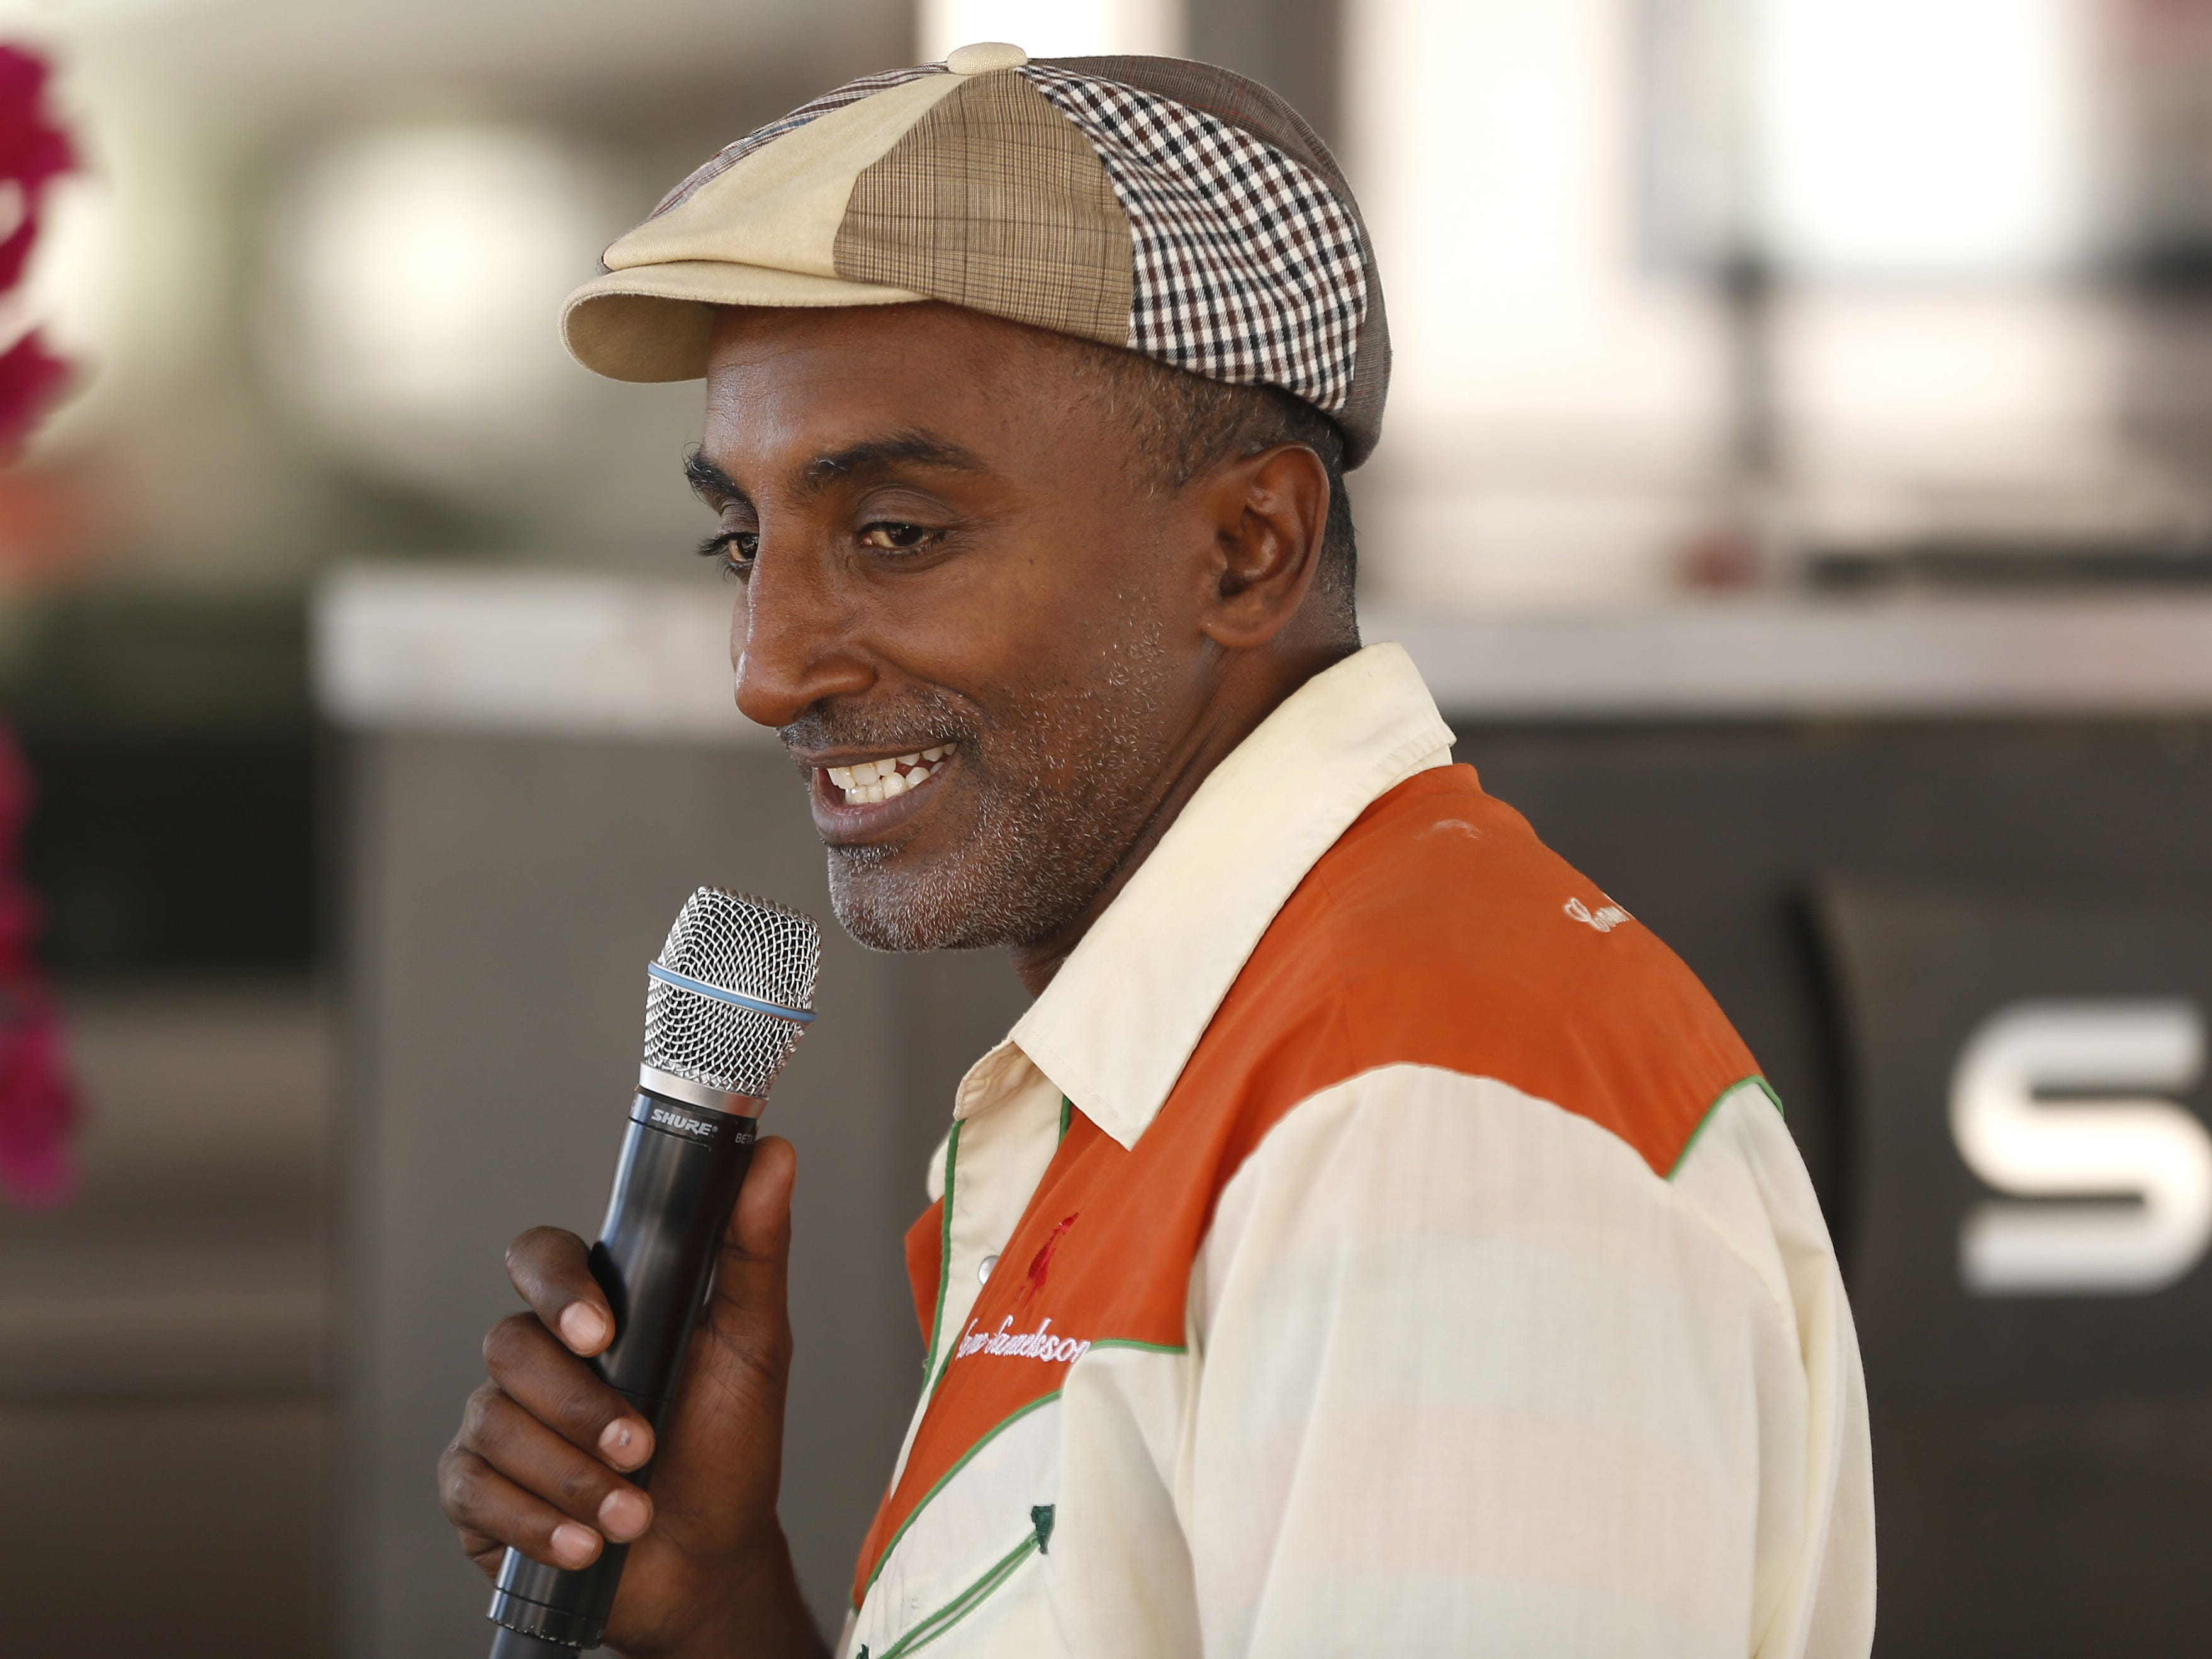 Chef Marcus Samuelsson talks with VIP guests during the azcentral Wine & Food Experience at WestWorld of Scottsdale on Nov. 3, 2018.